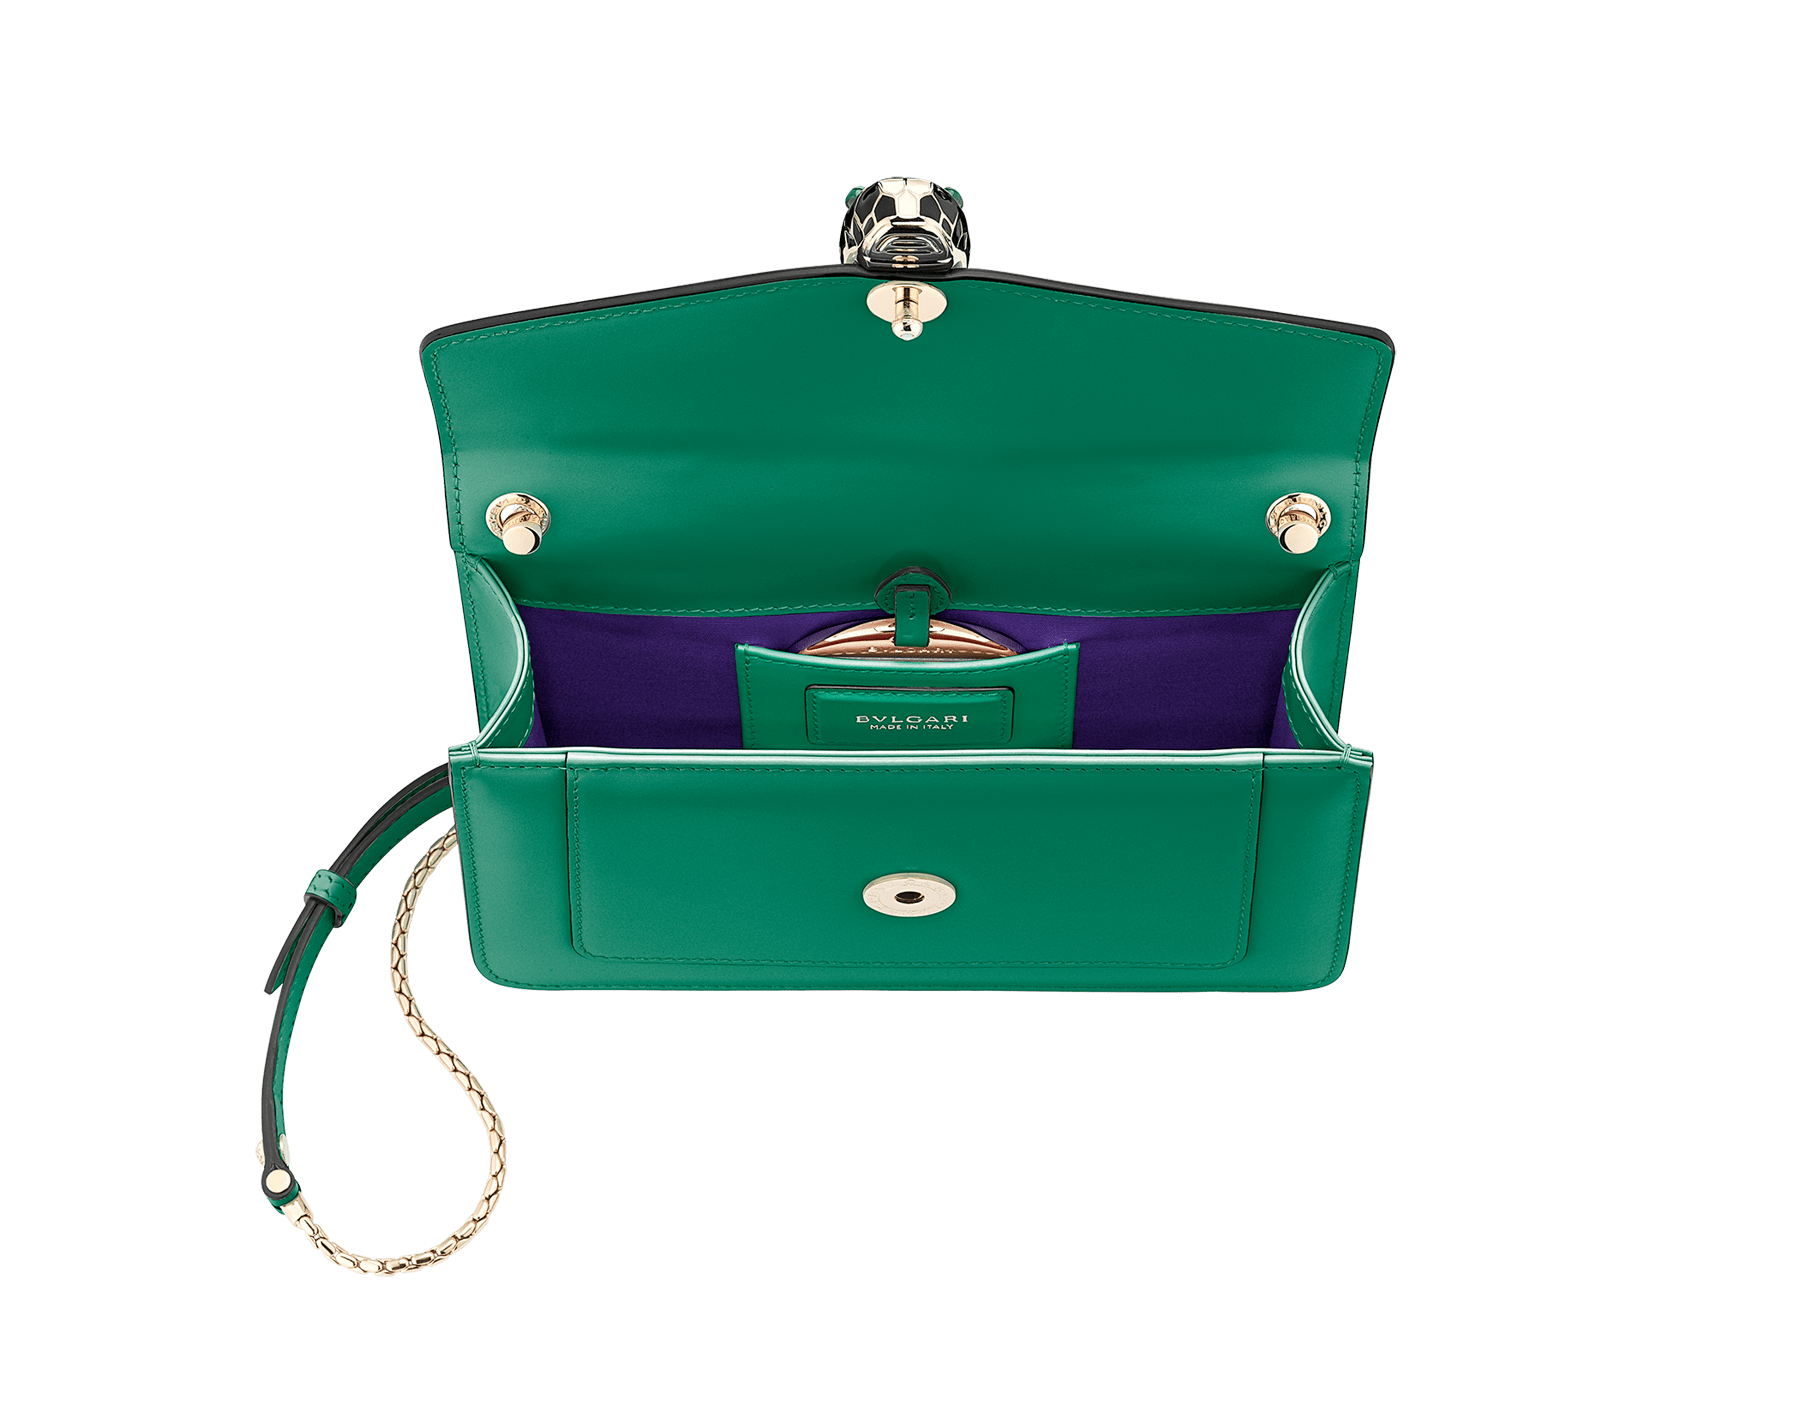 Shoulder bag in Serpenti Forever emerald green calf leather with brass light gold plated Serpenti head closure in black and white enamel with eyes in malachite. 38065 image 4